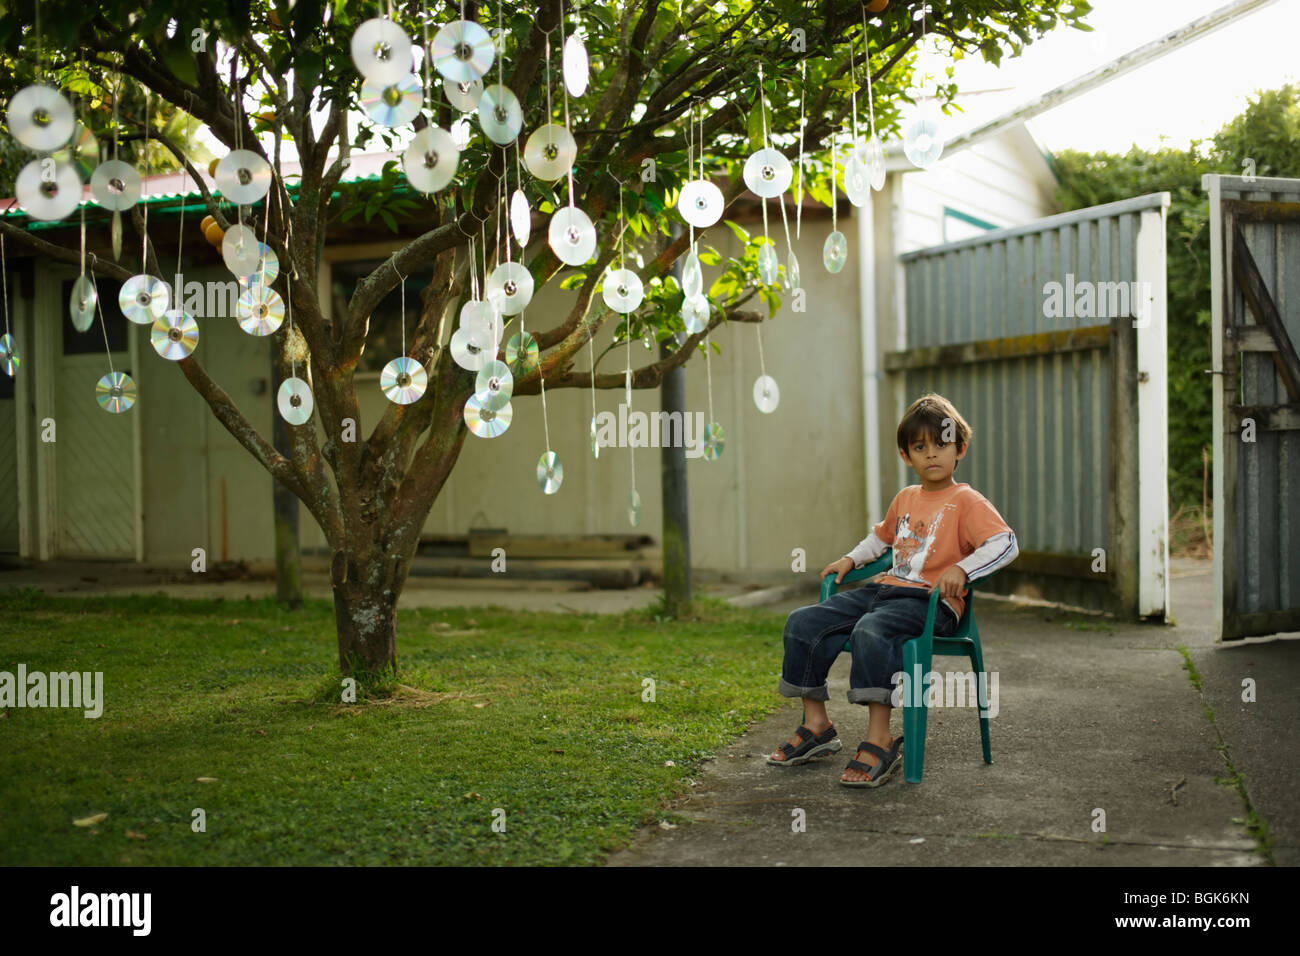 Boy sits beneath fruit tree with discs hanging from its branches - Stock Image